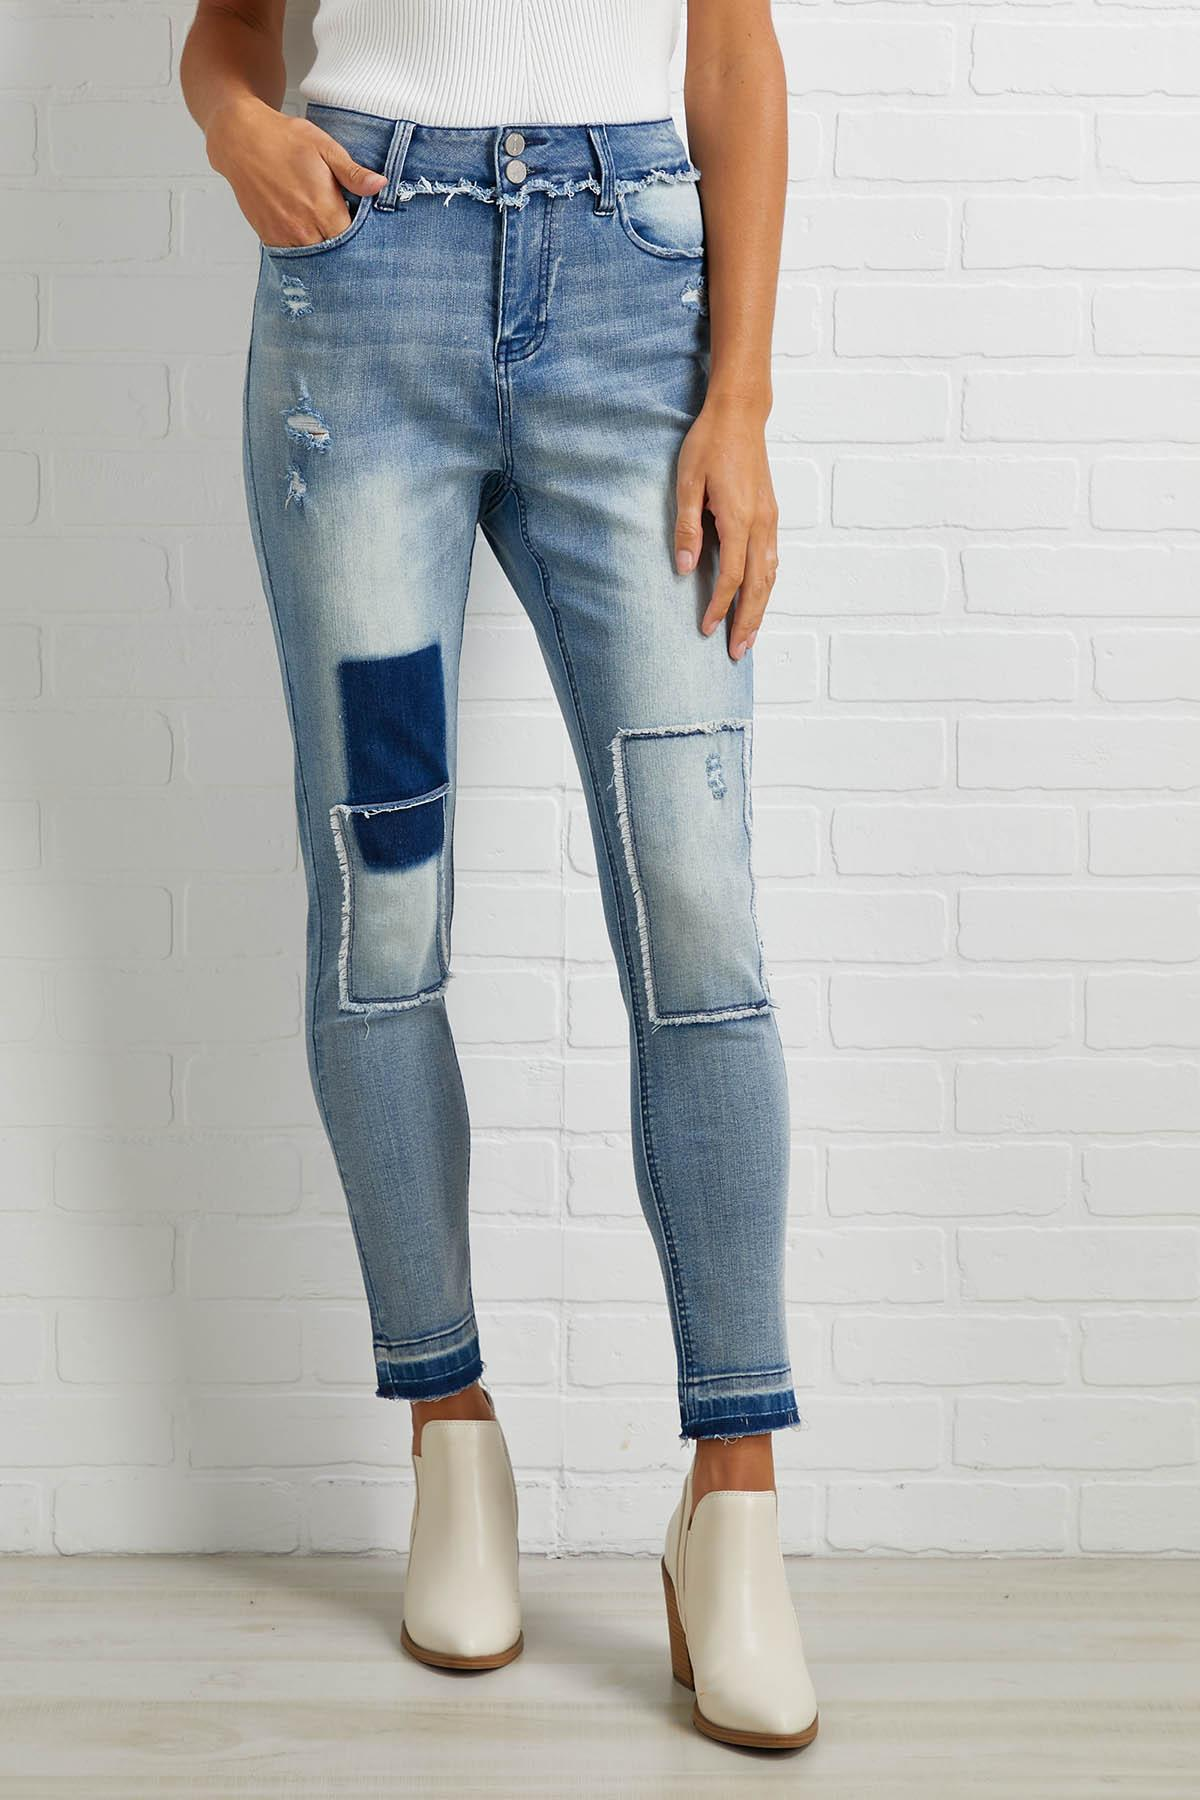 Arts And Patch Jeans